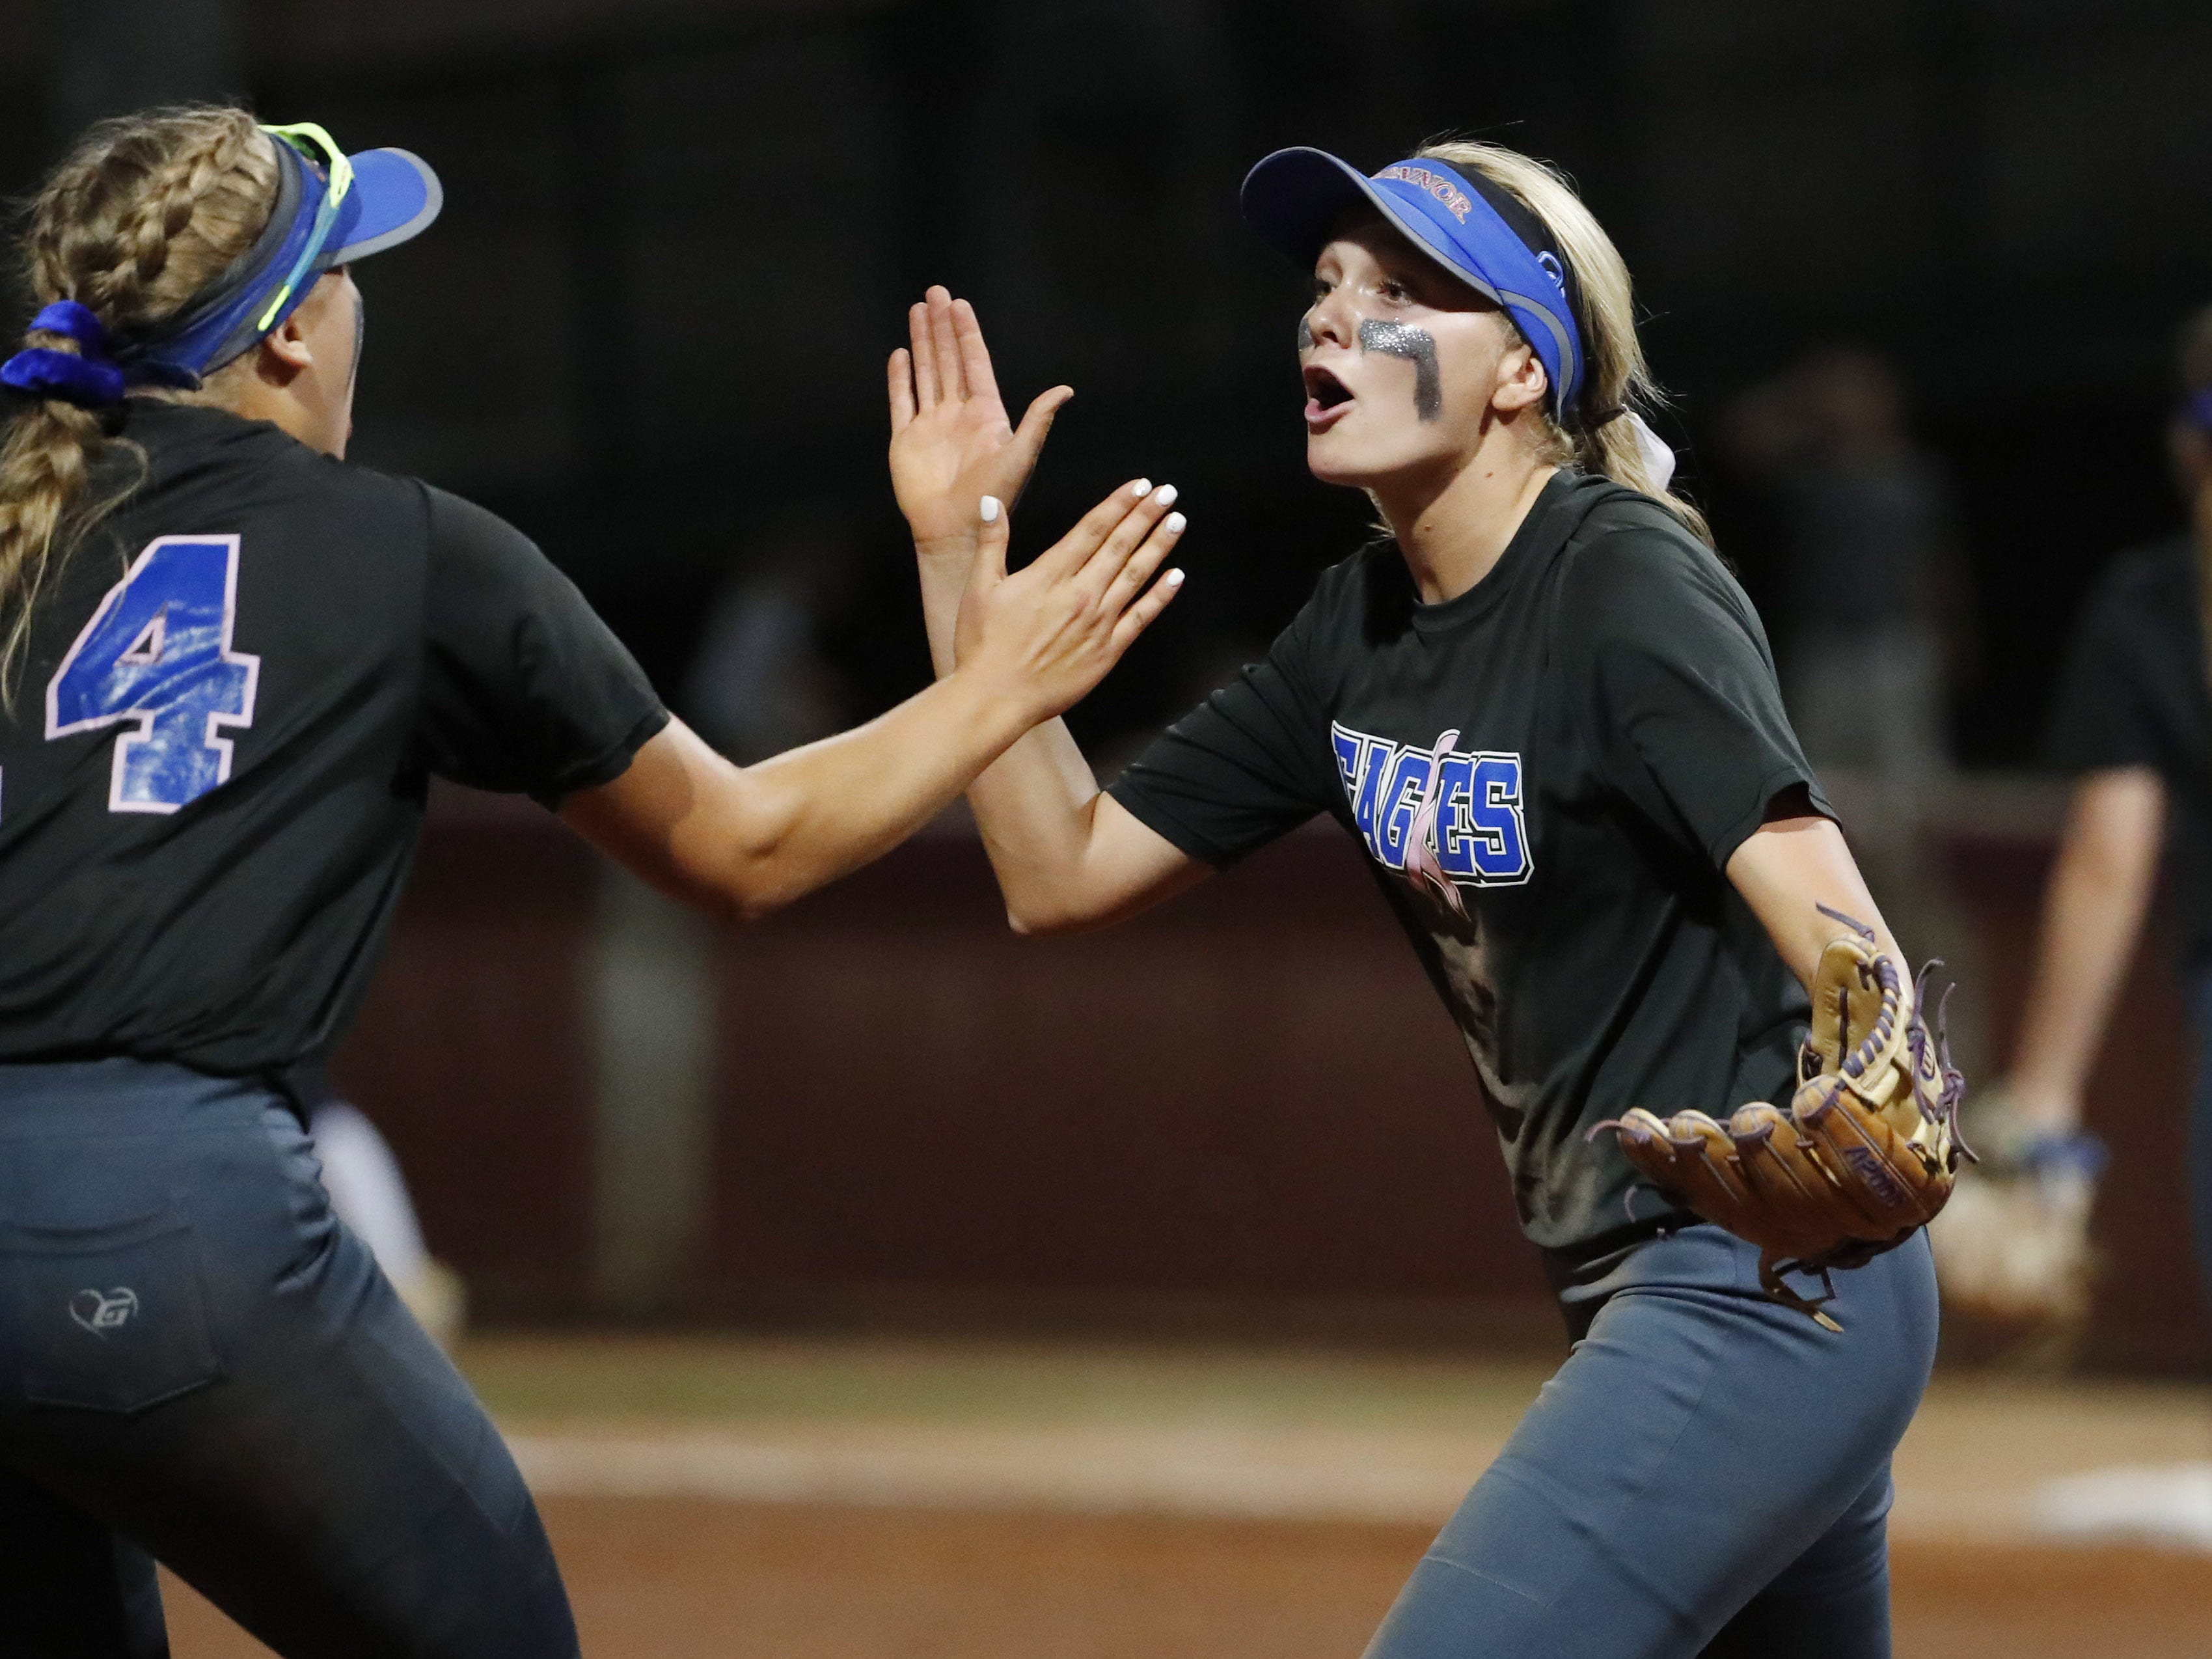 Sandra Day O'Connor third baseman Rylee Holtorf (right) is congratulated by shortstop Kaylee Erickson (14) after turning a double-play against Pinnacle during the 6A State Softball Championship in Tempe, Ariz. May 13, 2019.